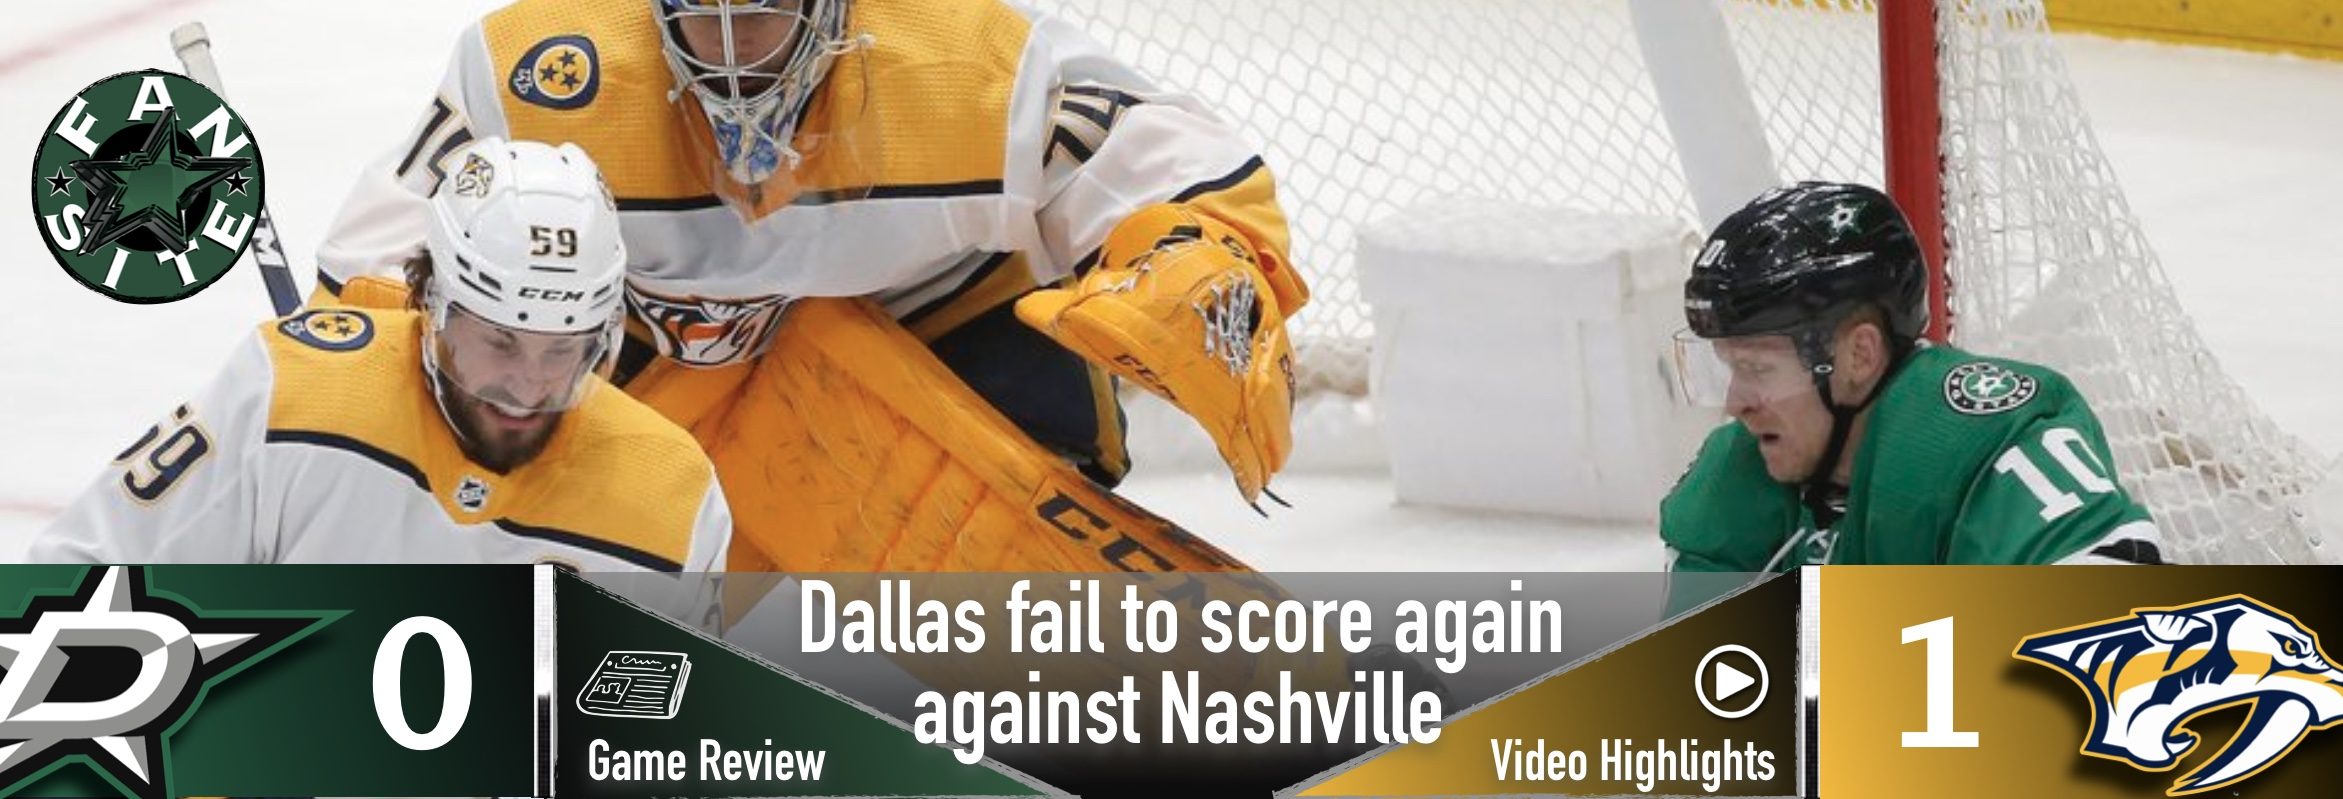 Dallas fails to score again against Nashville